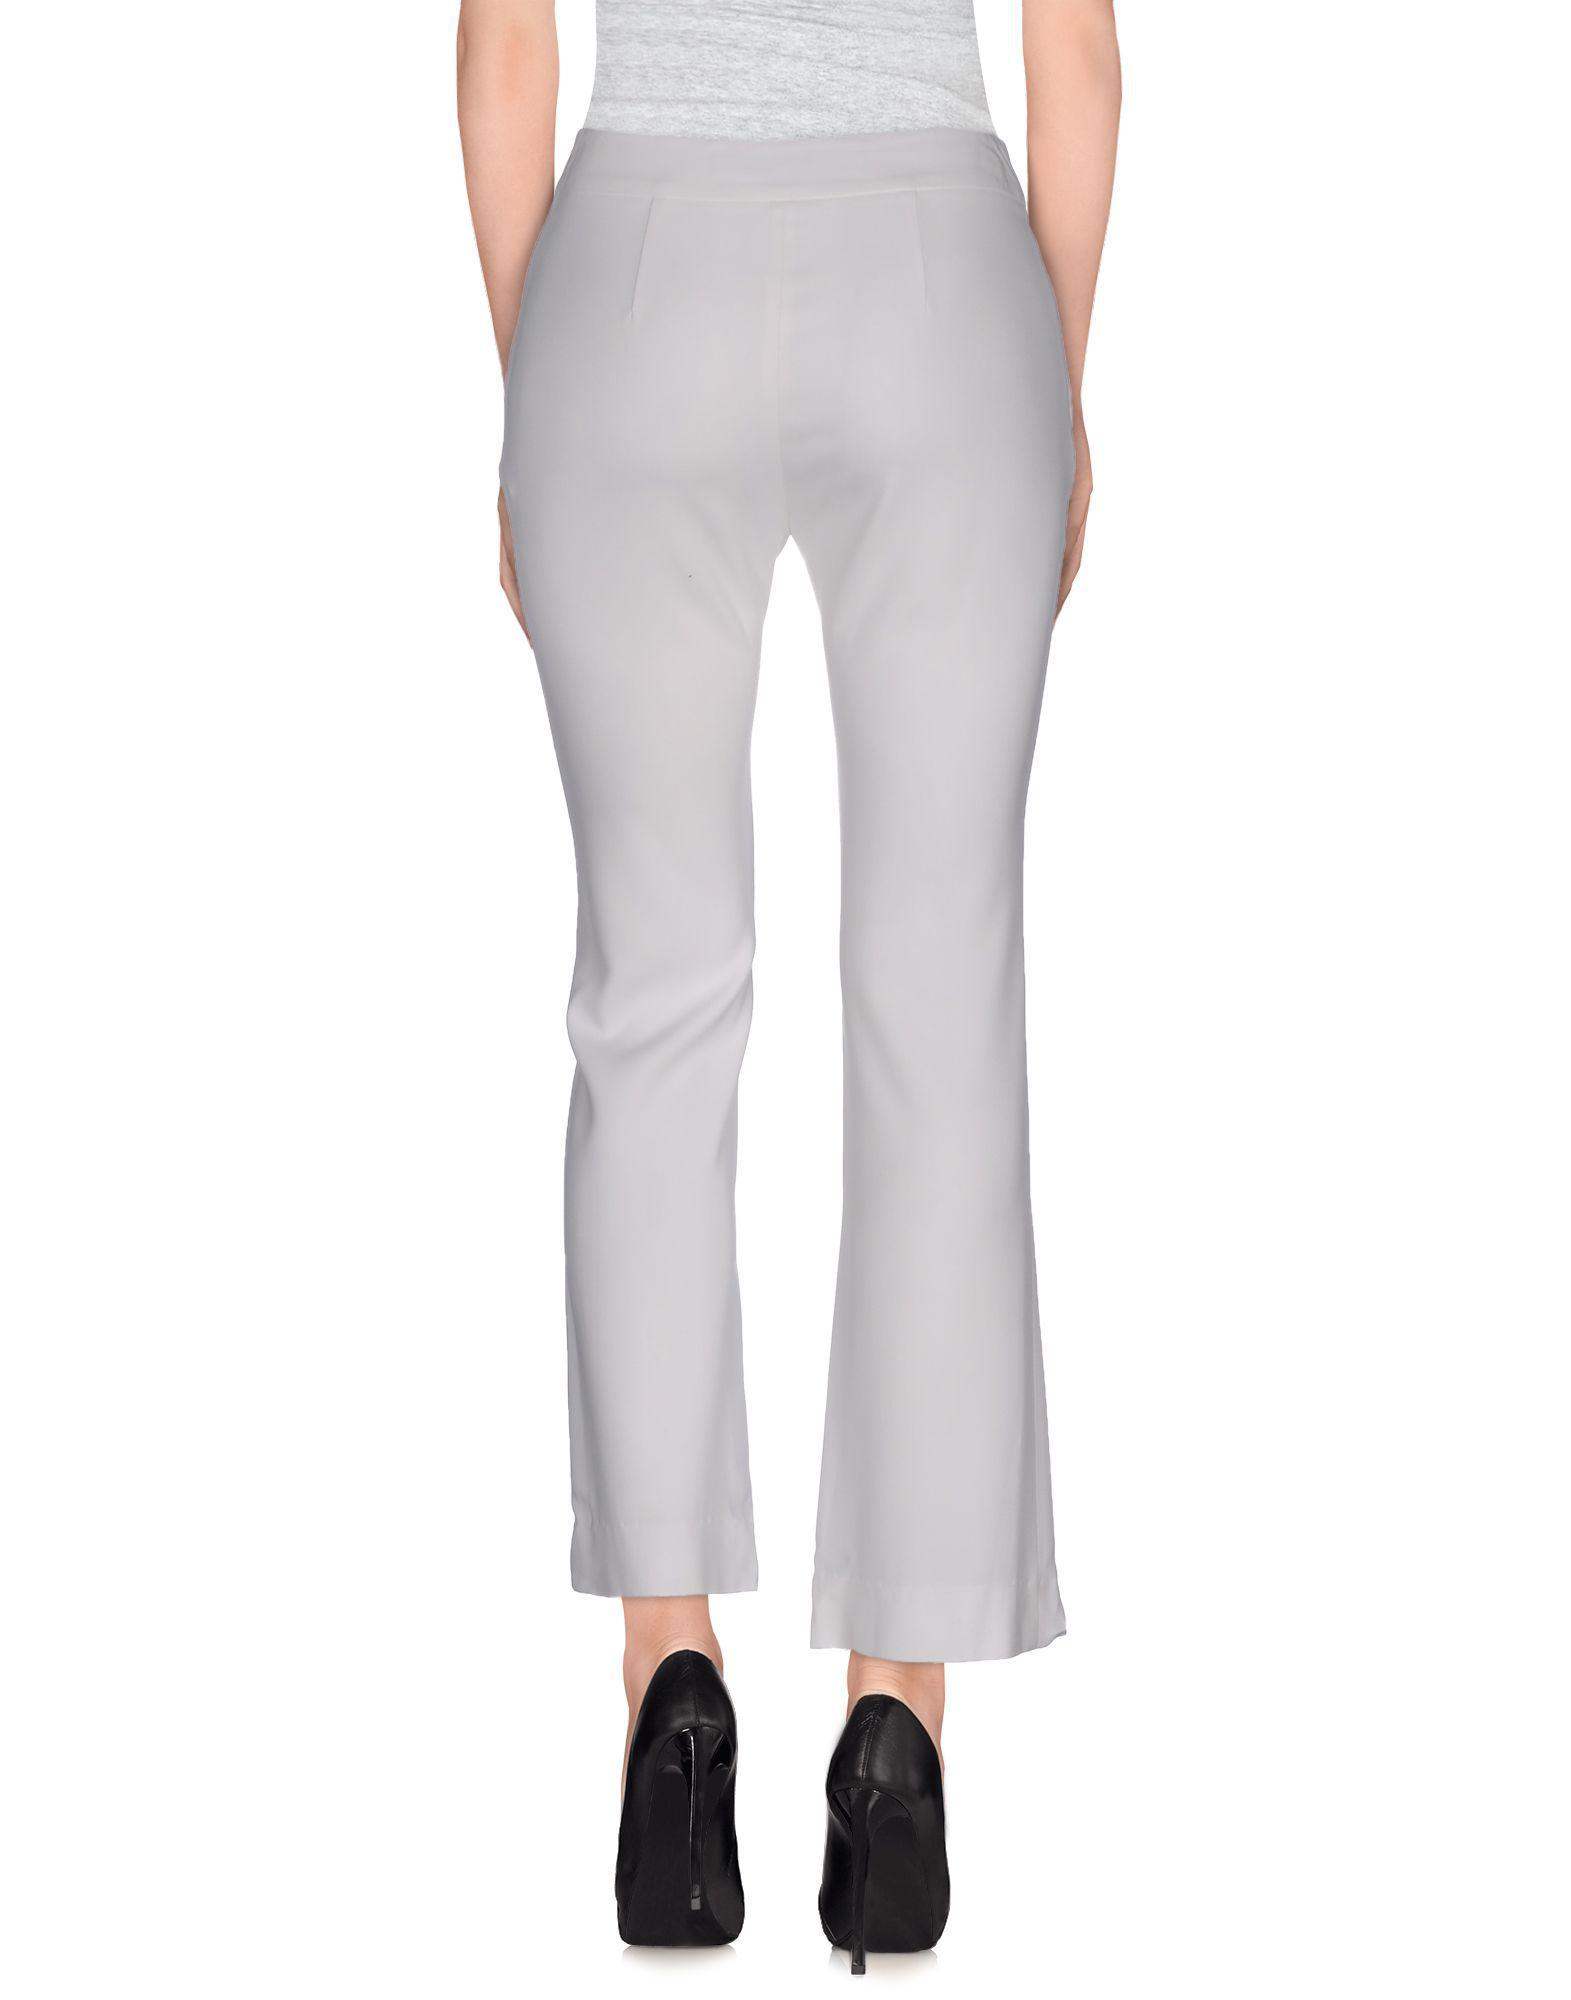 TROUSERS - Casual trousers Normaluisa Buy Cheap Websites By2n2AT2